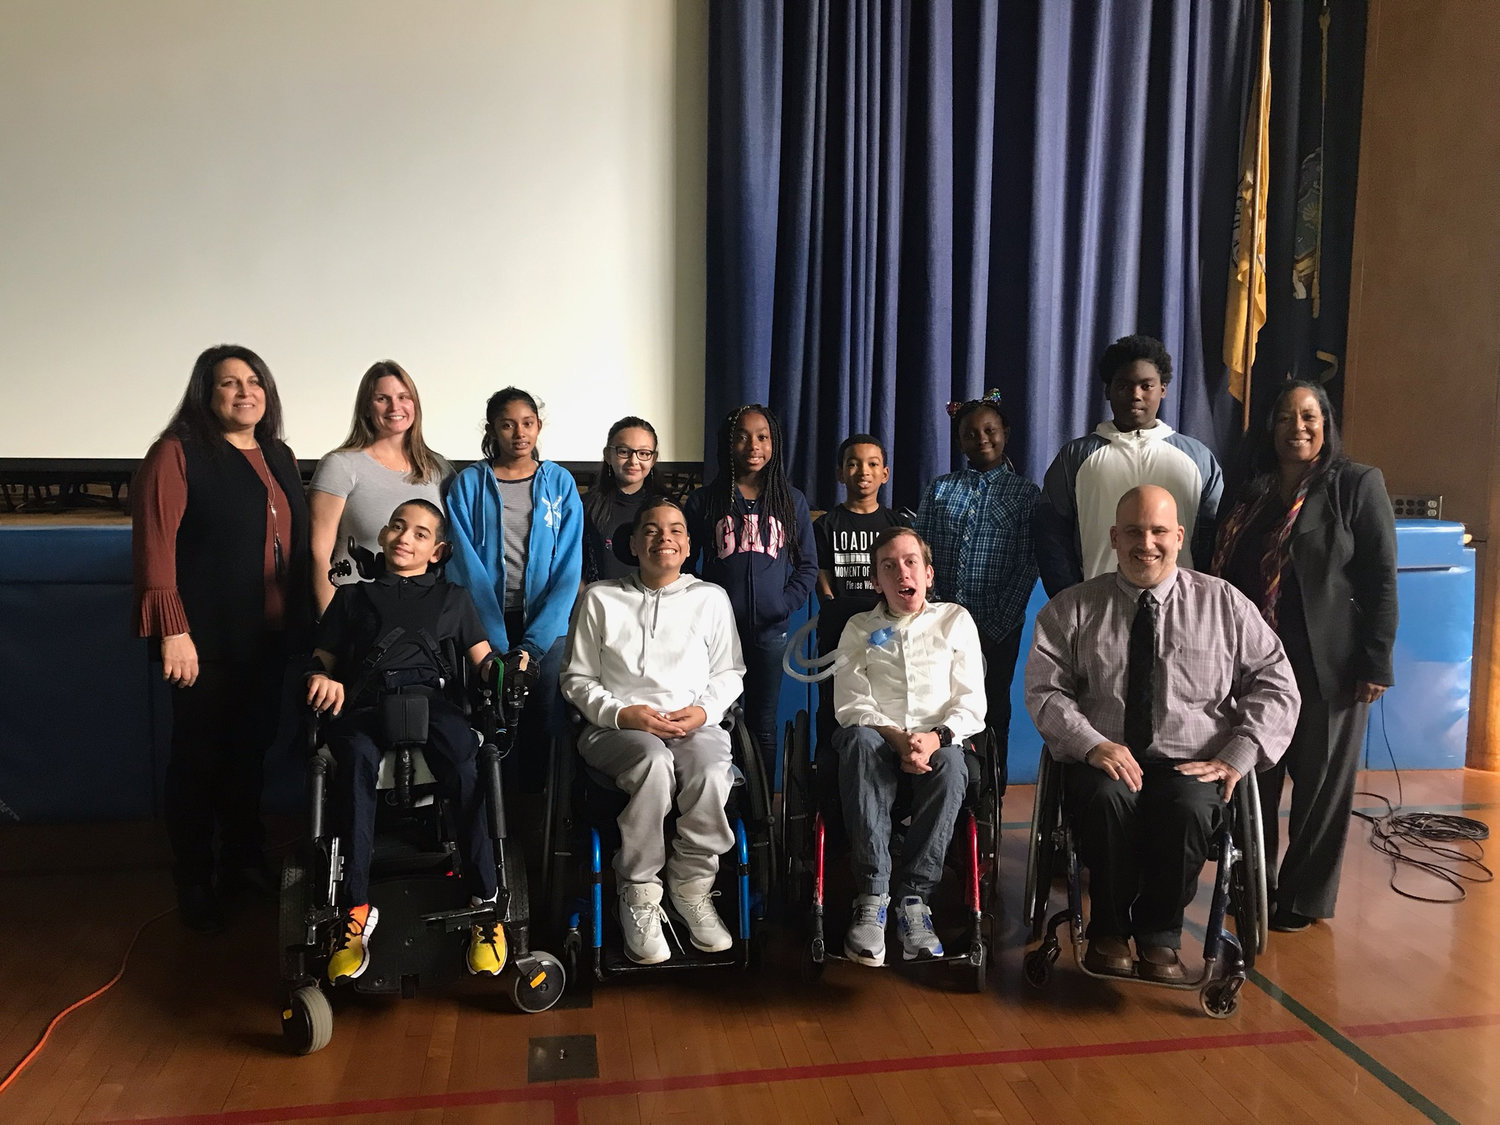 Dutch Broadway School students and officials celebrated their school's sixth annual Disability Awareness Day with representatives from the Henry Viscardi School for children with physical and medical disabilities.